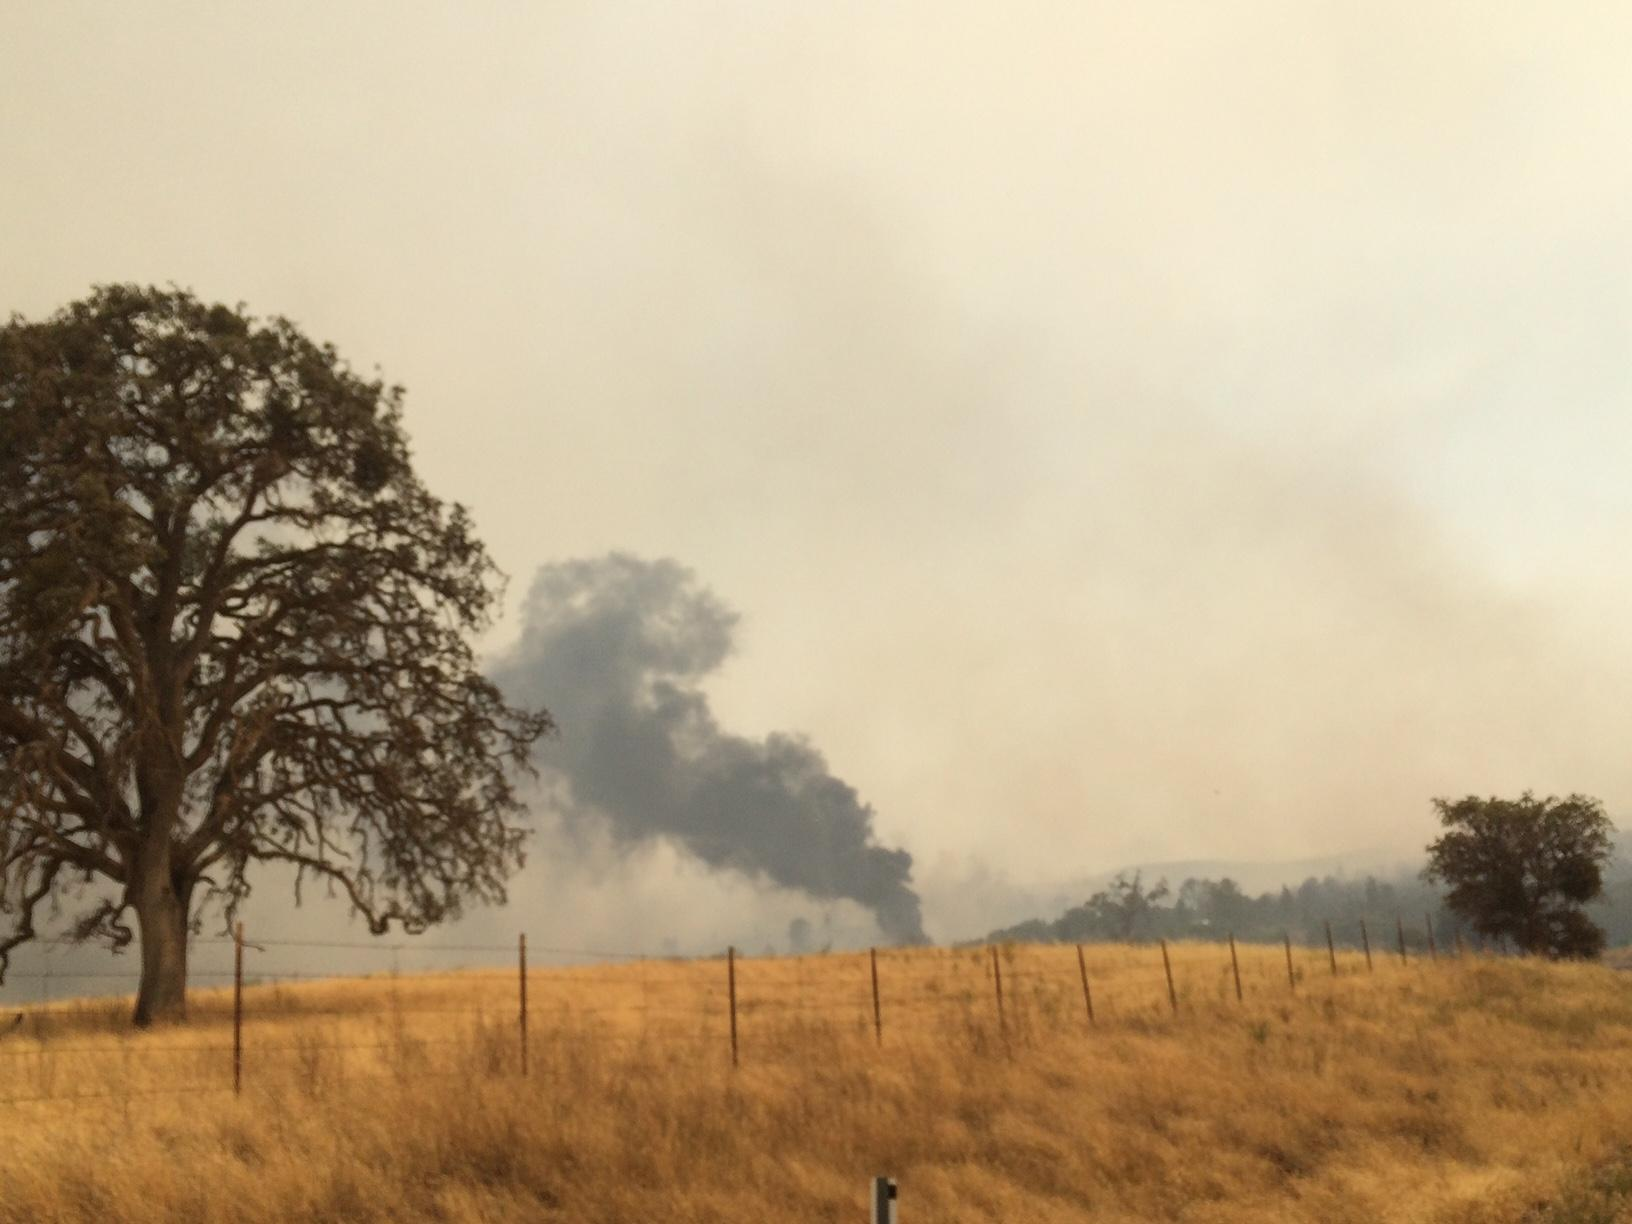 Fire crews continue to battle Detwiler Fire